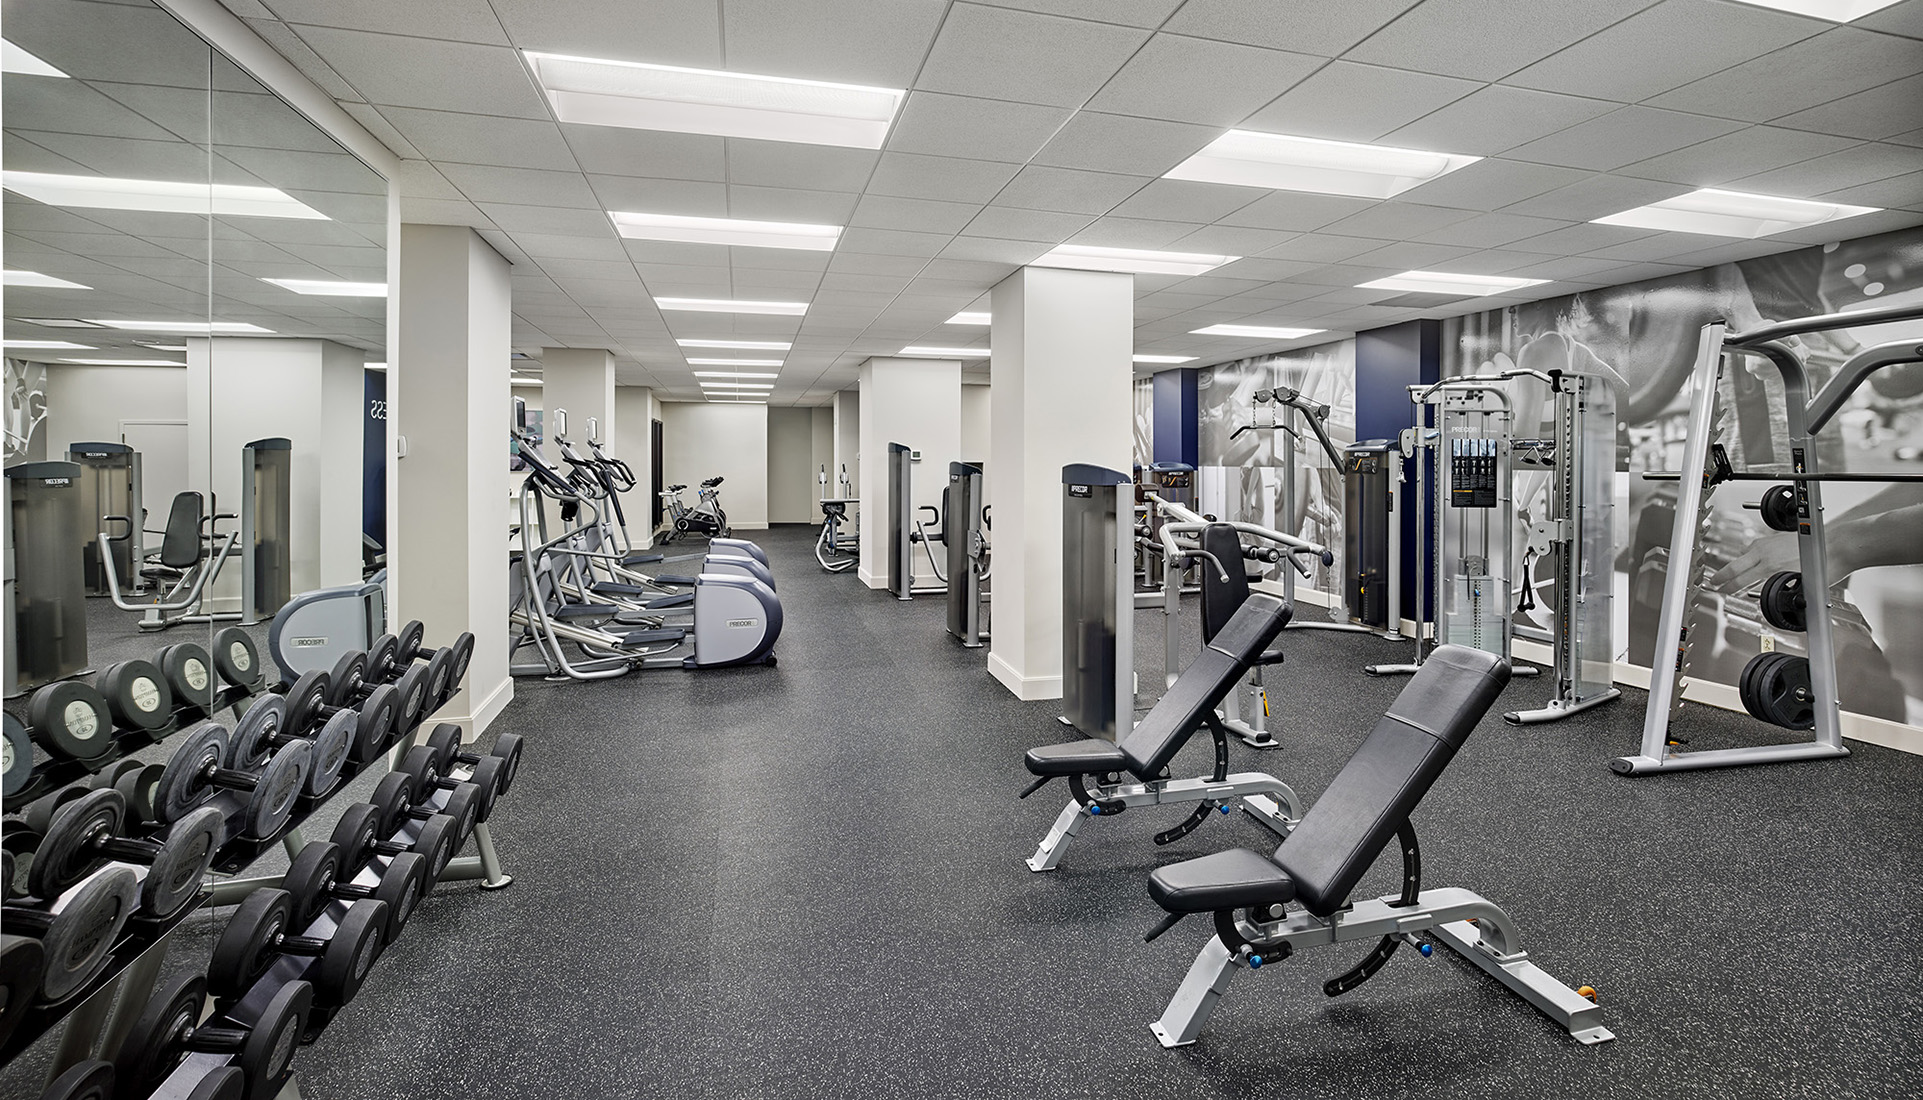 Fitness center at the Franklin Residences in Philadelphia with state-of-the-art equipment